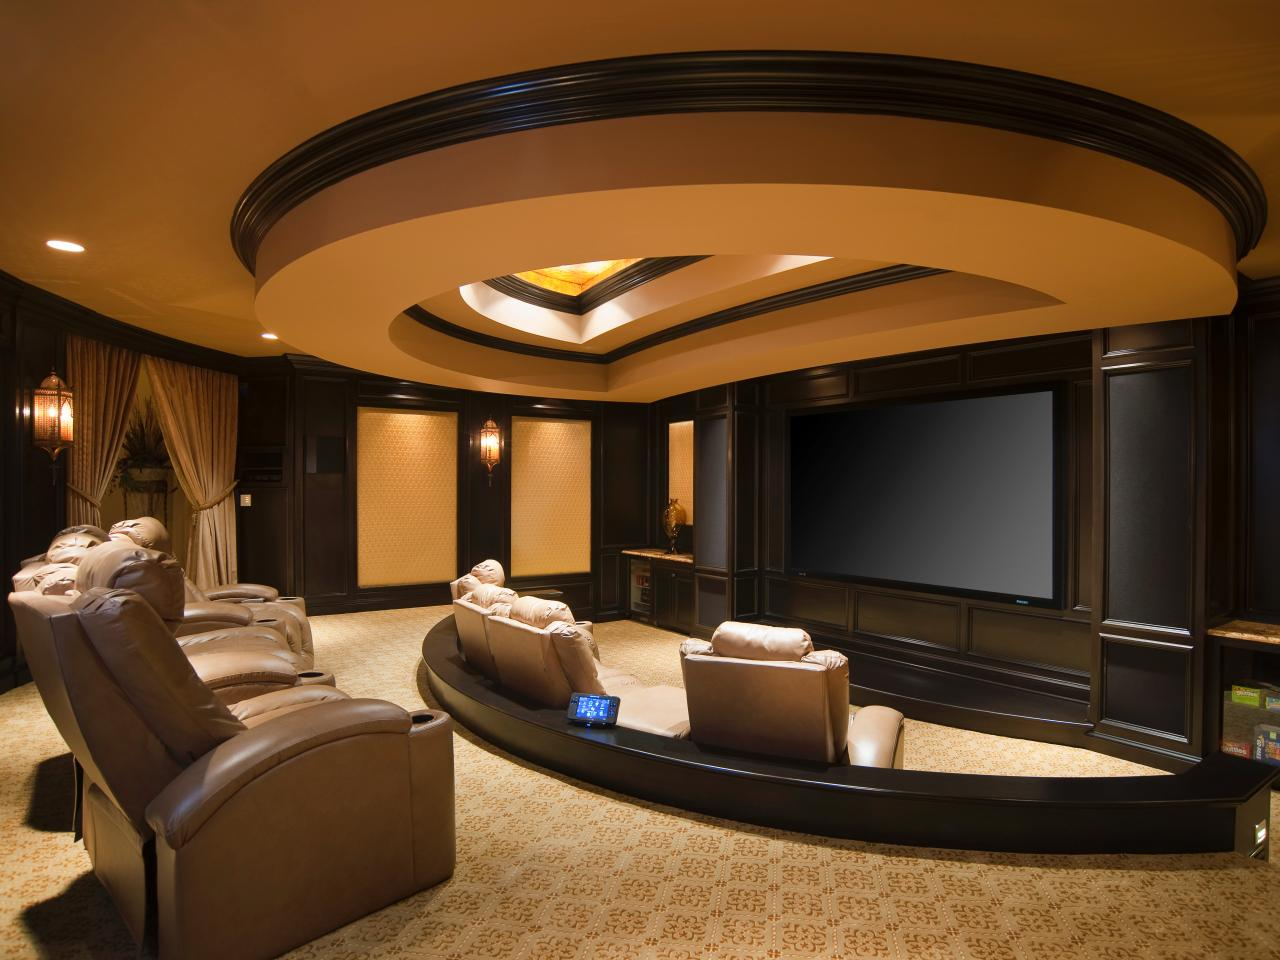 Home theater carpet ideas pictures options expert tips hgtv Interior design ideas home theater